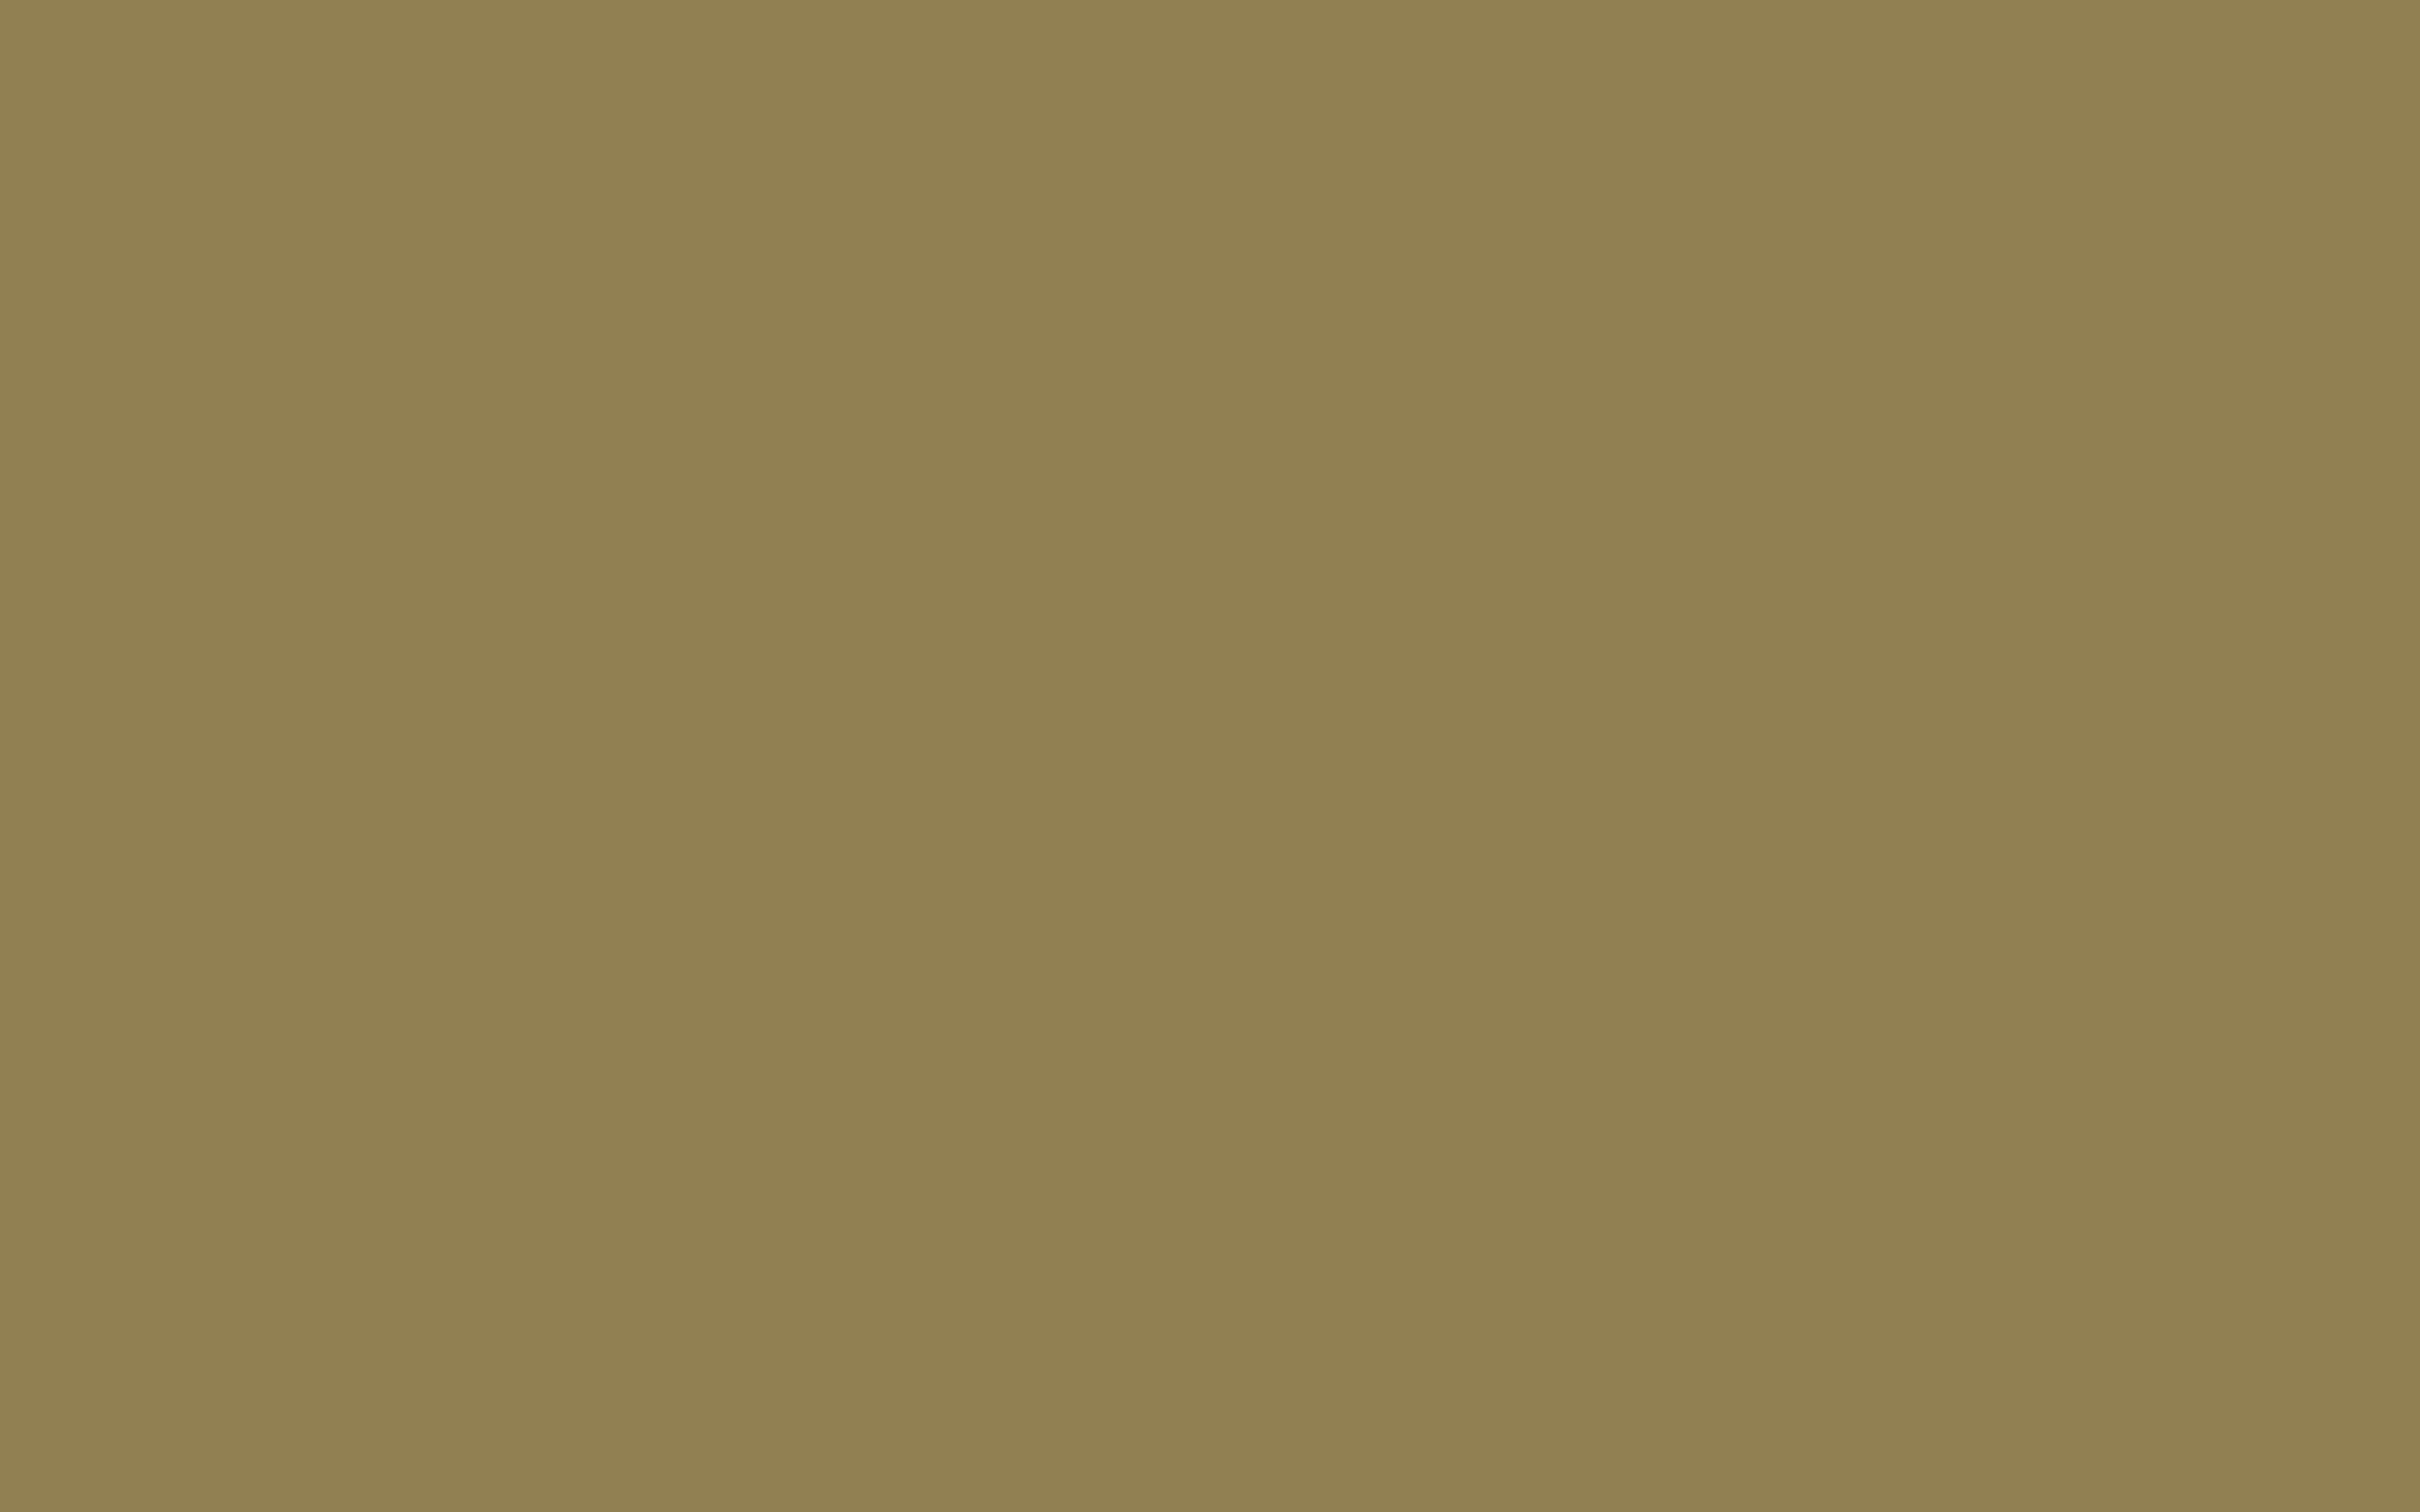 2560x1600 Dark Tan Solid Color Background